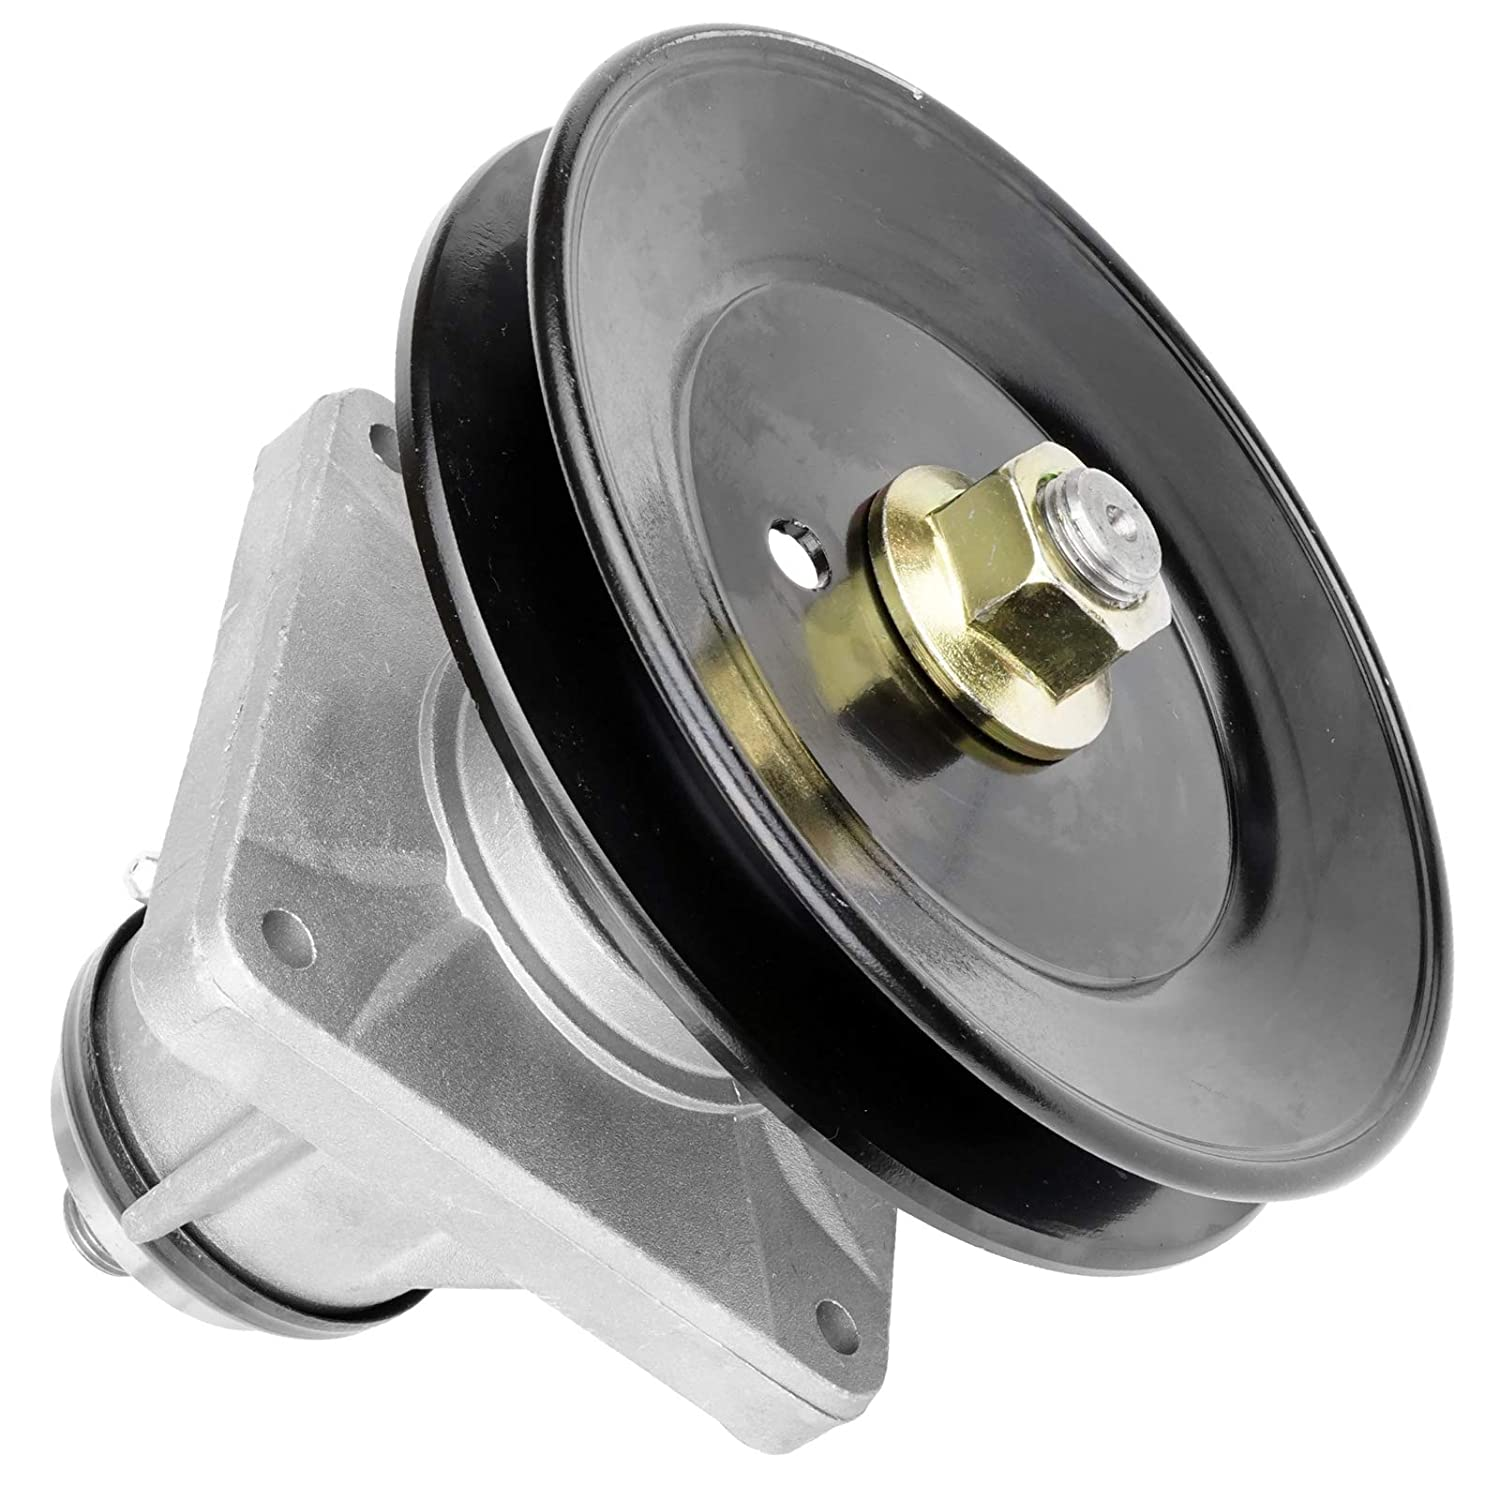 CALTRIC SPINDLE ASSEMBLY w//BOLT FOR MTD CUB CADET 618-0660 918-0660 618-0660A 918-0660A